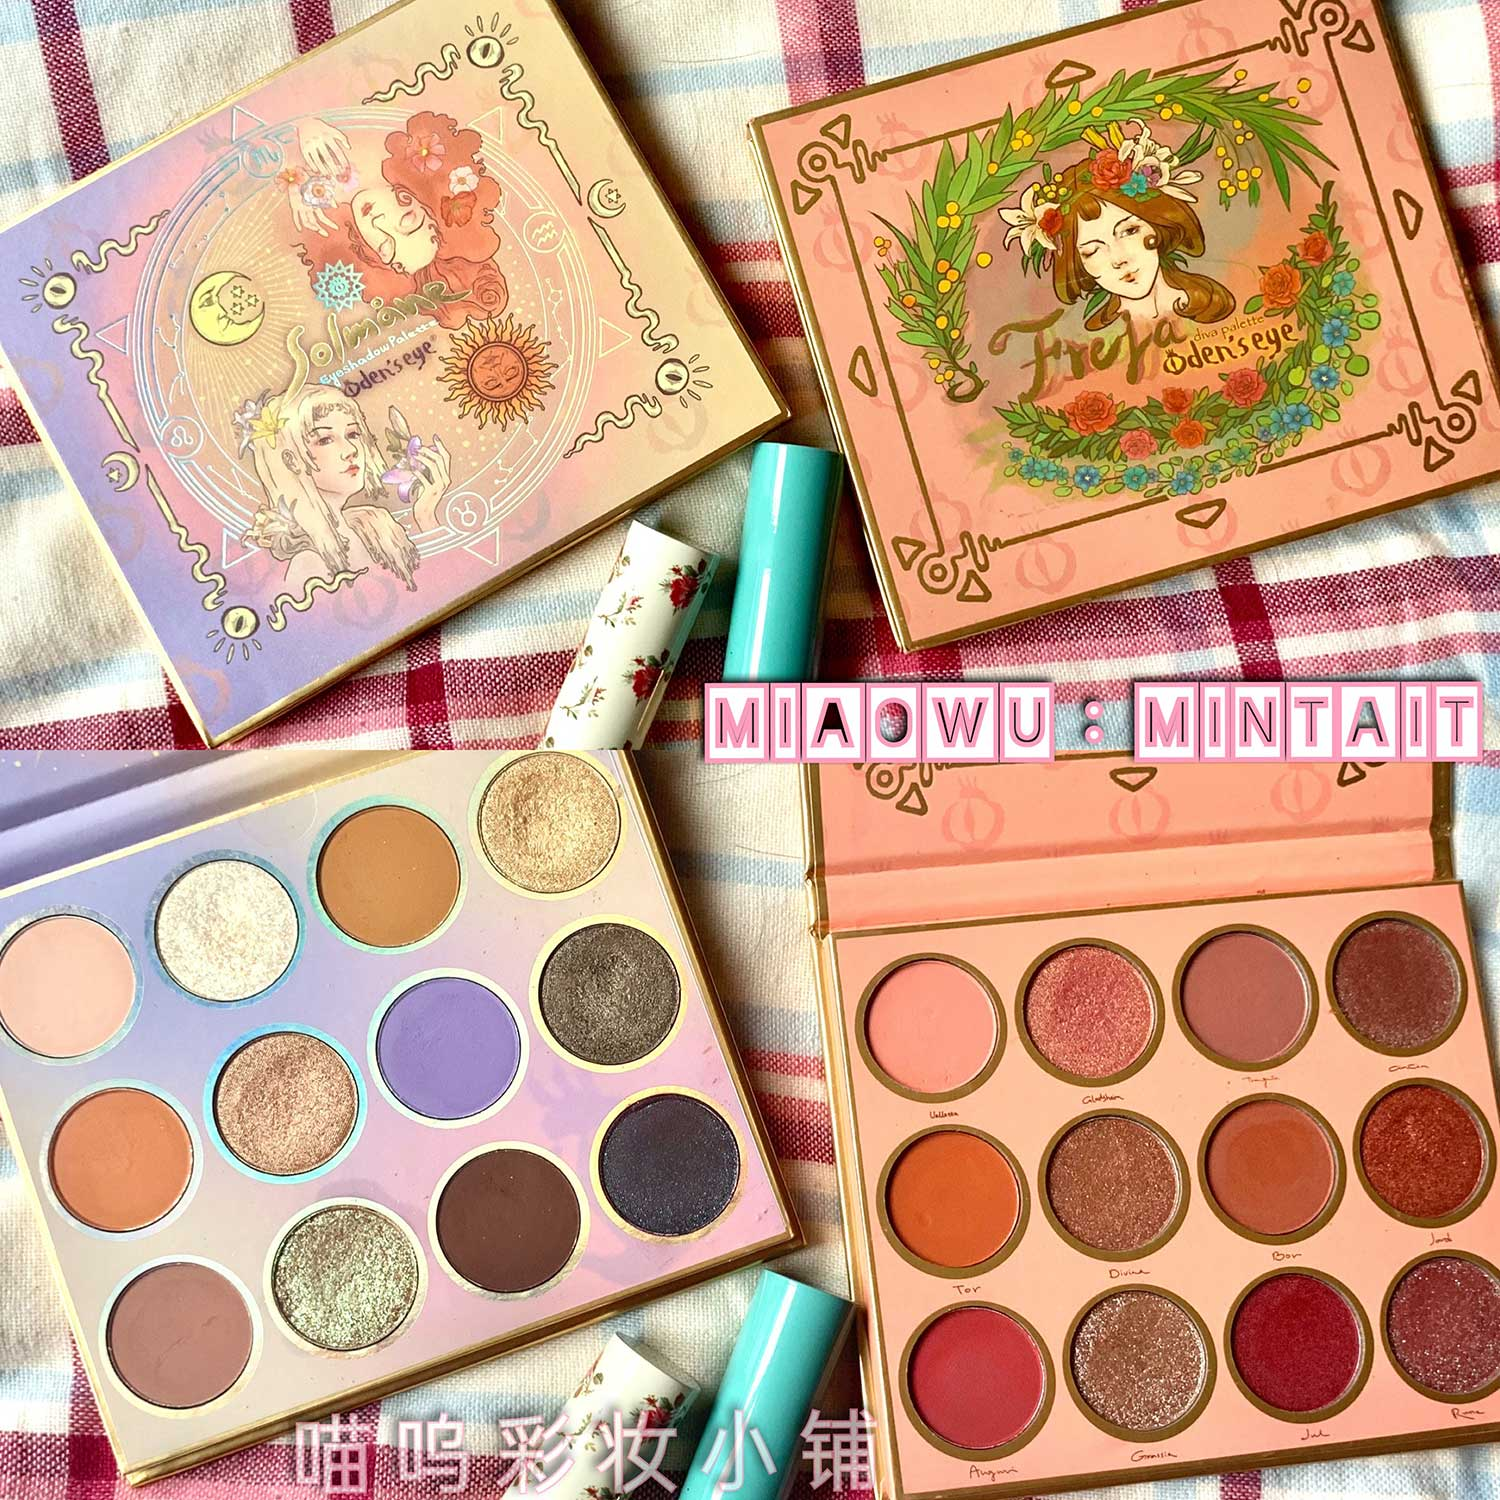 Spot Oden's eye eye shadow 12 color Freja fairy Solmane, moon and moon, all match colors.